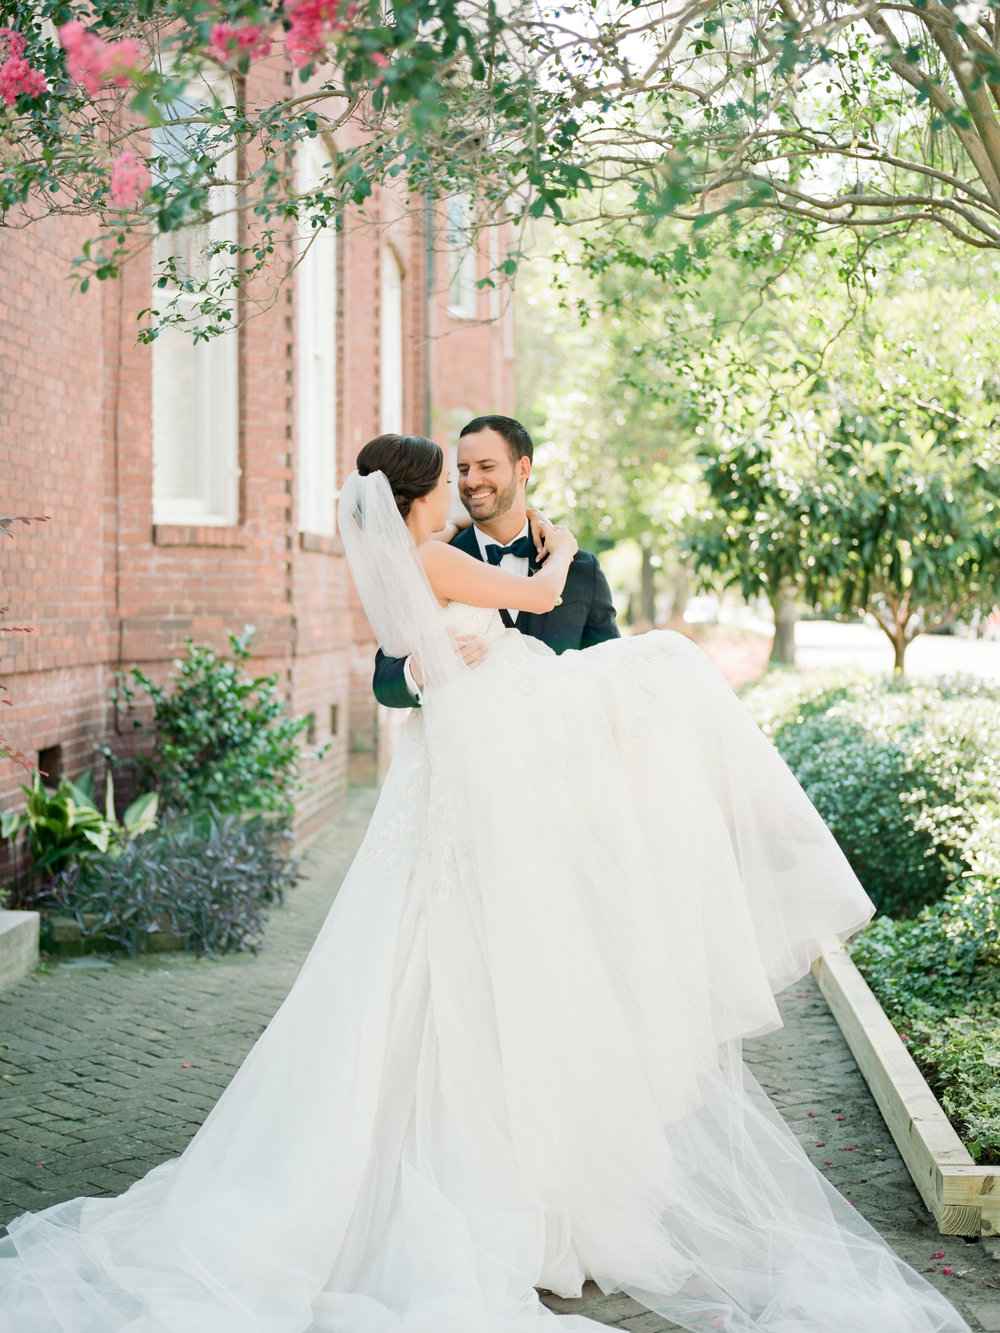 mckenzie_and_andrew_savannah_wedding_photographer_shannon_griffin_bride_and_groom-36.jpg